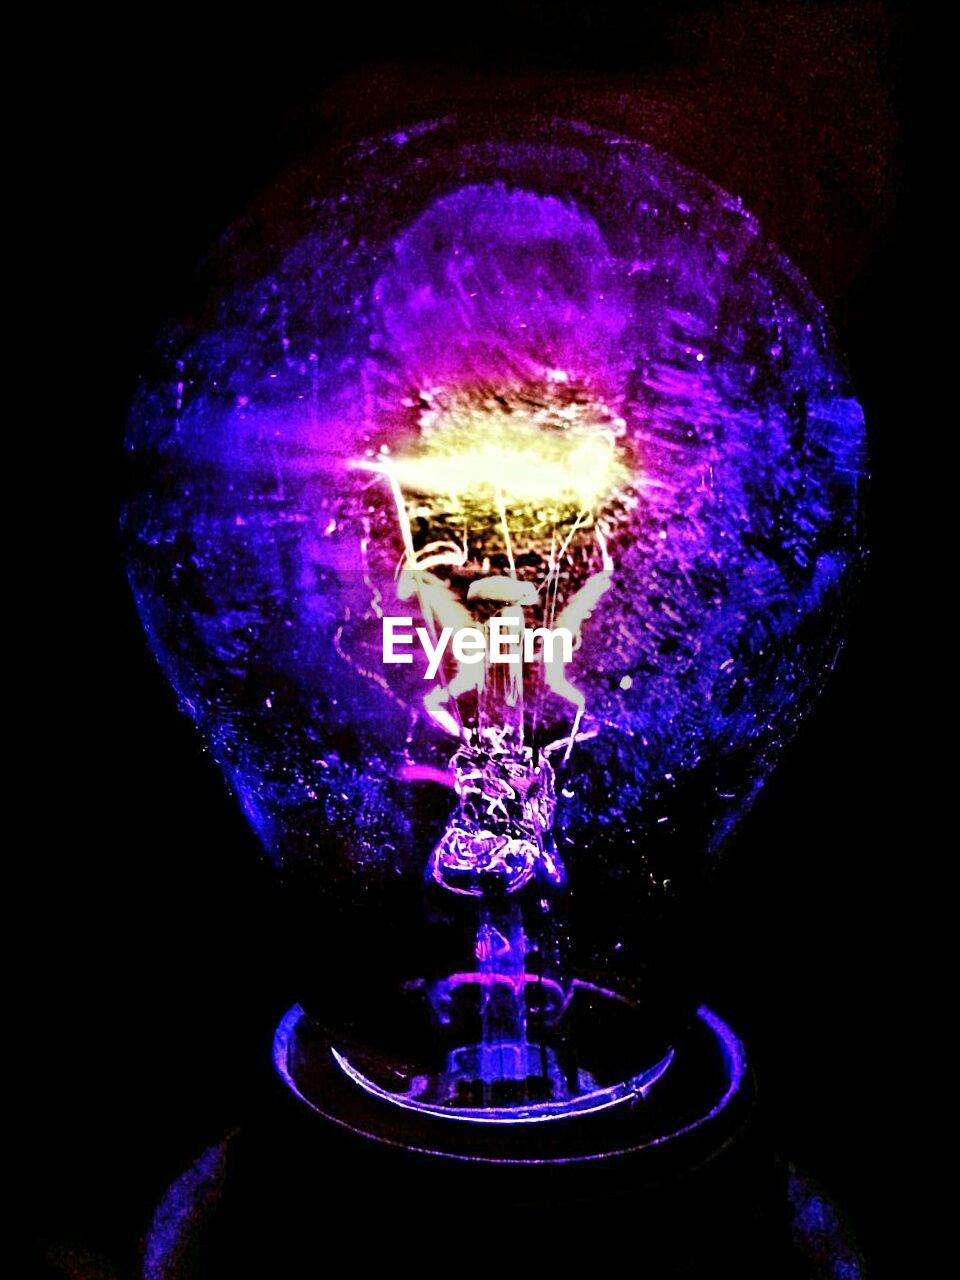 electricity, lighting equipment, light bulb, illuminated, glowing, filament, fuel and power generation, purple, technology, close-up, indoors, no people, black background, futuristic